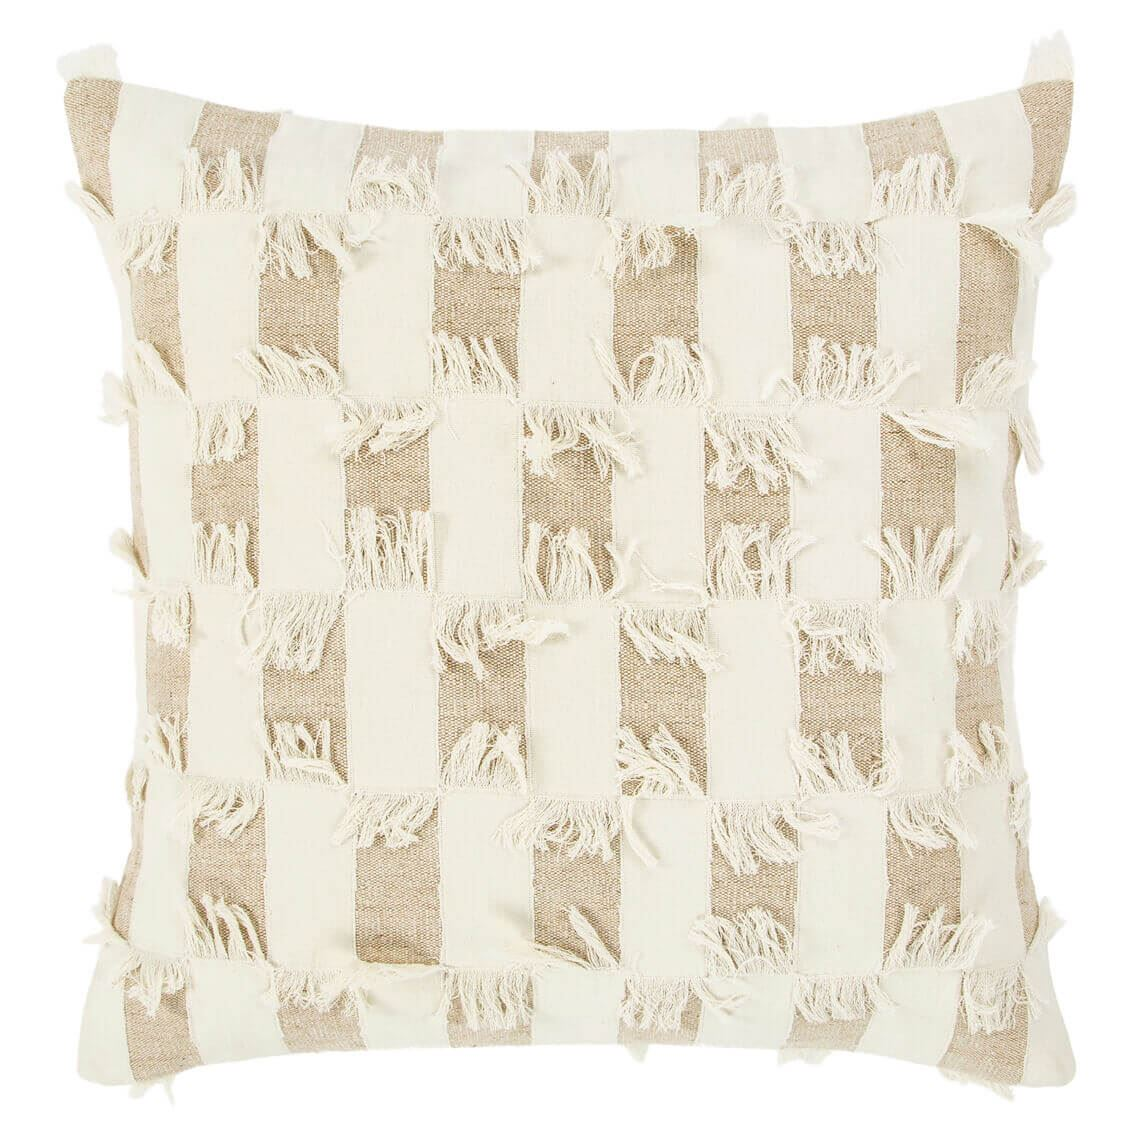 Philly Cushion Size W 50cm x D 50cm x H 14cm in Ivory 75% Cotton/25% Jute Freedom